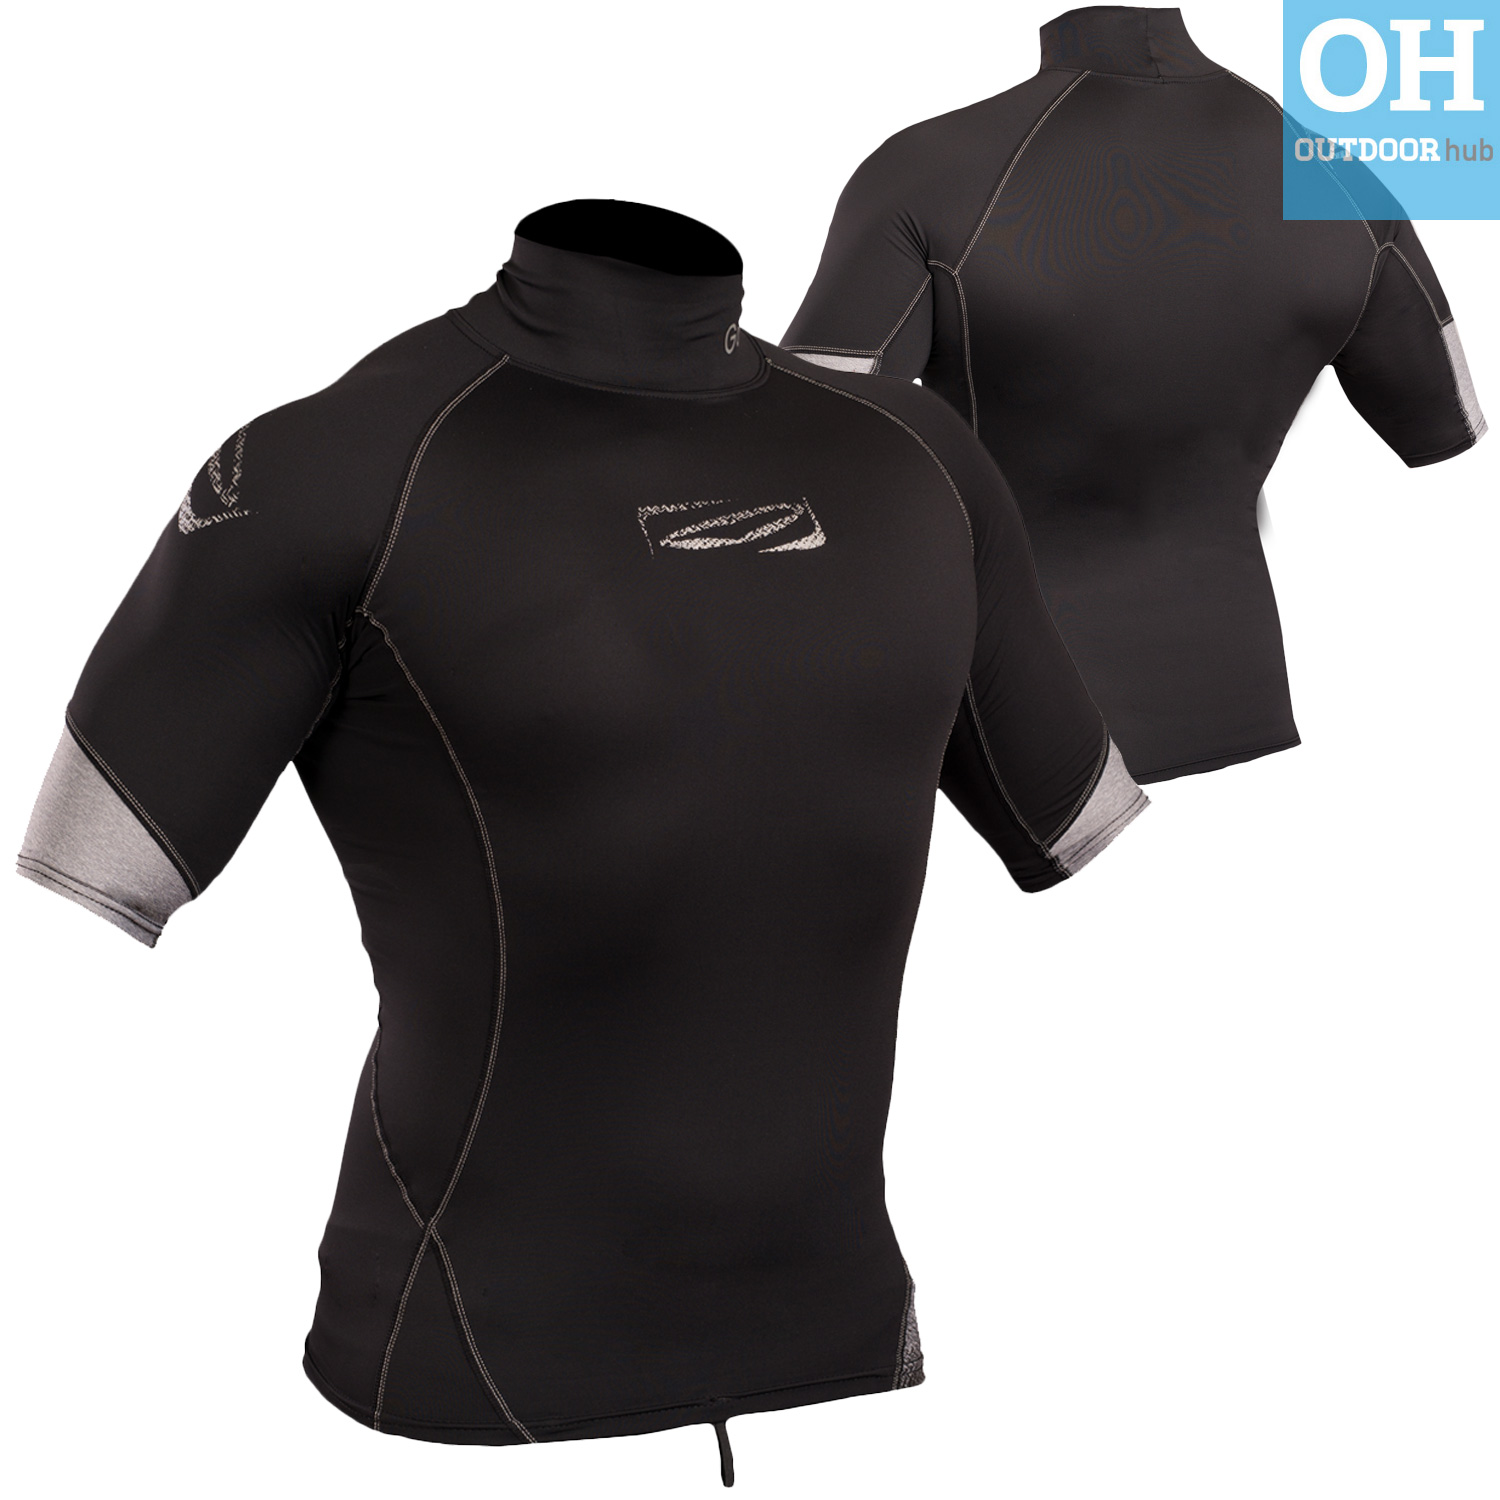 Gul-Xola-Mens-Short-Sleeve-Rash-Guard-Vest-Wetsuit-Top-UV-50-Surf-Swim-Dive thumbnail 11